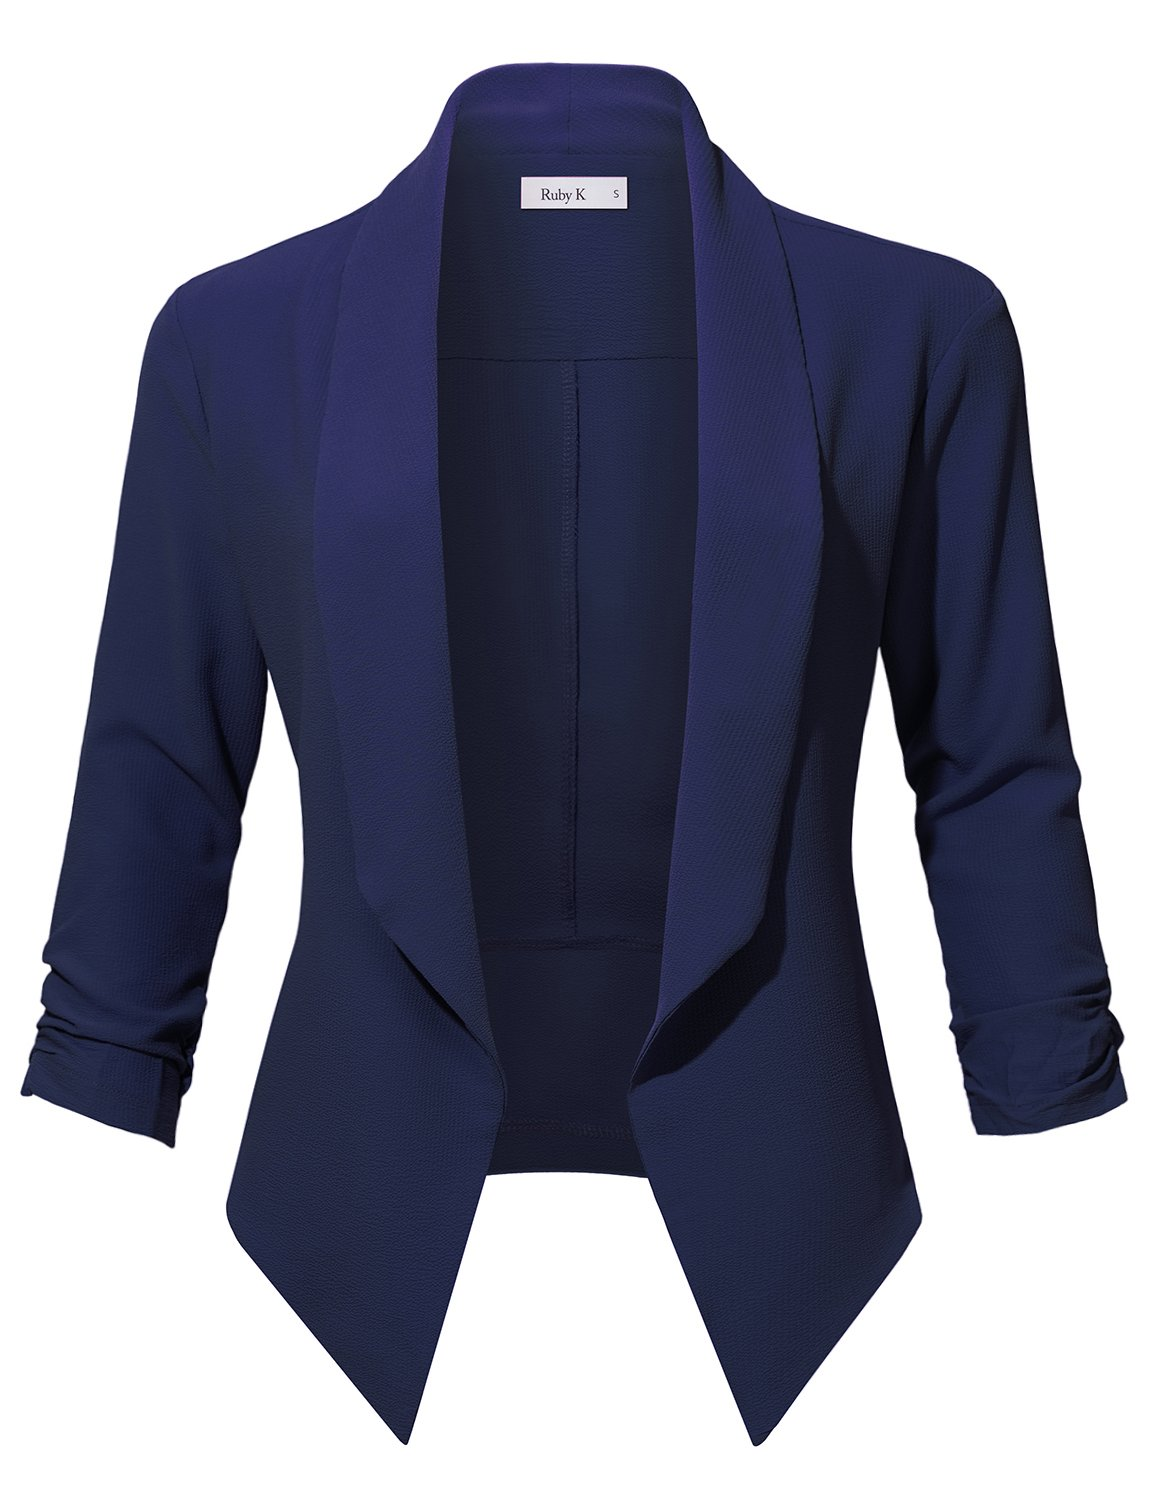 RubyK Womens Casual Office Open Front Ruched 3/4 Sleeve Cardigan Blazer Jacket